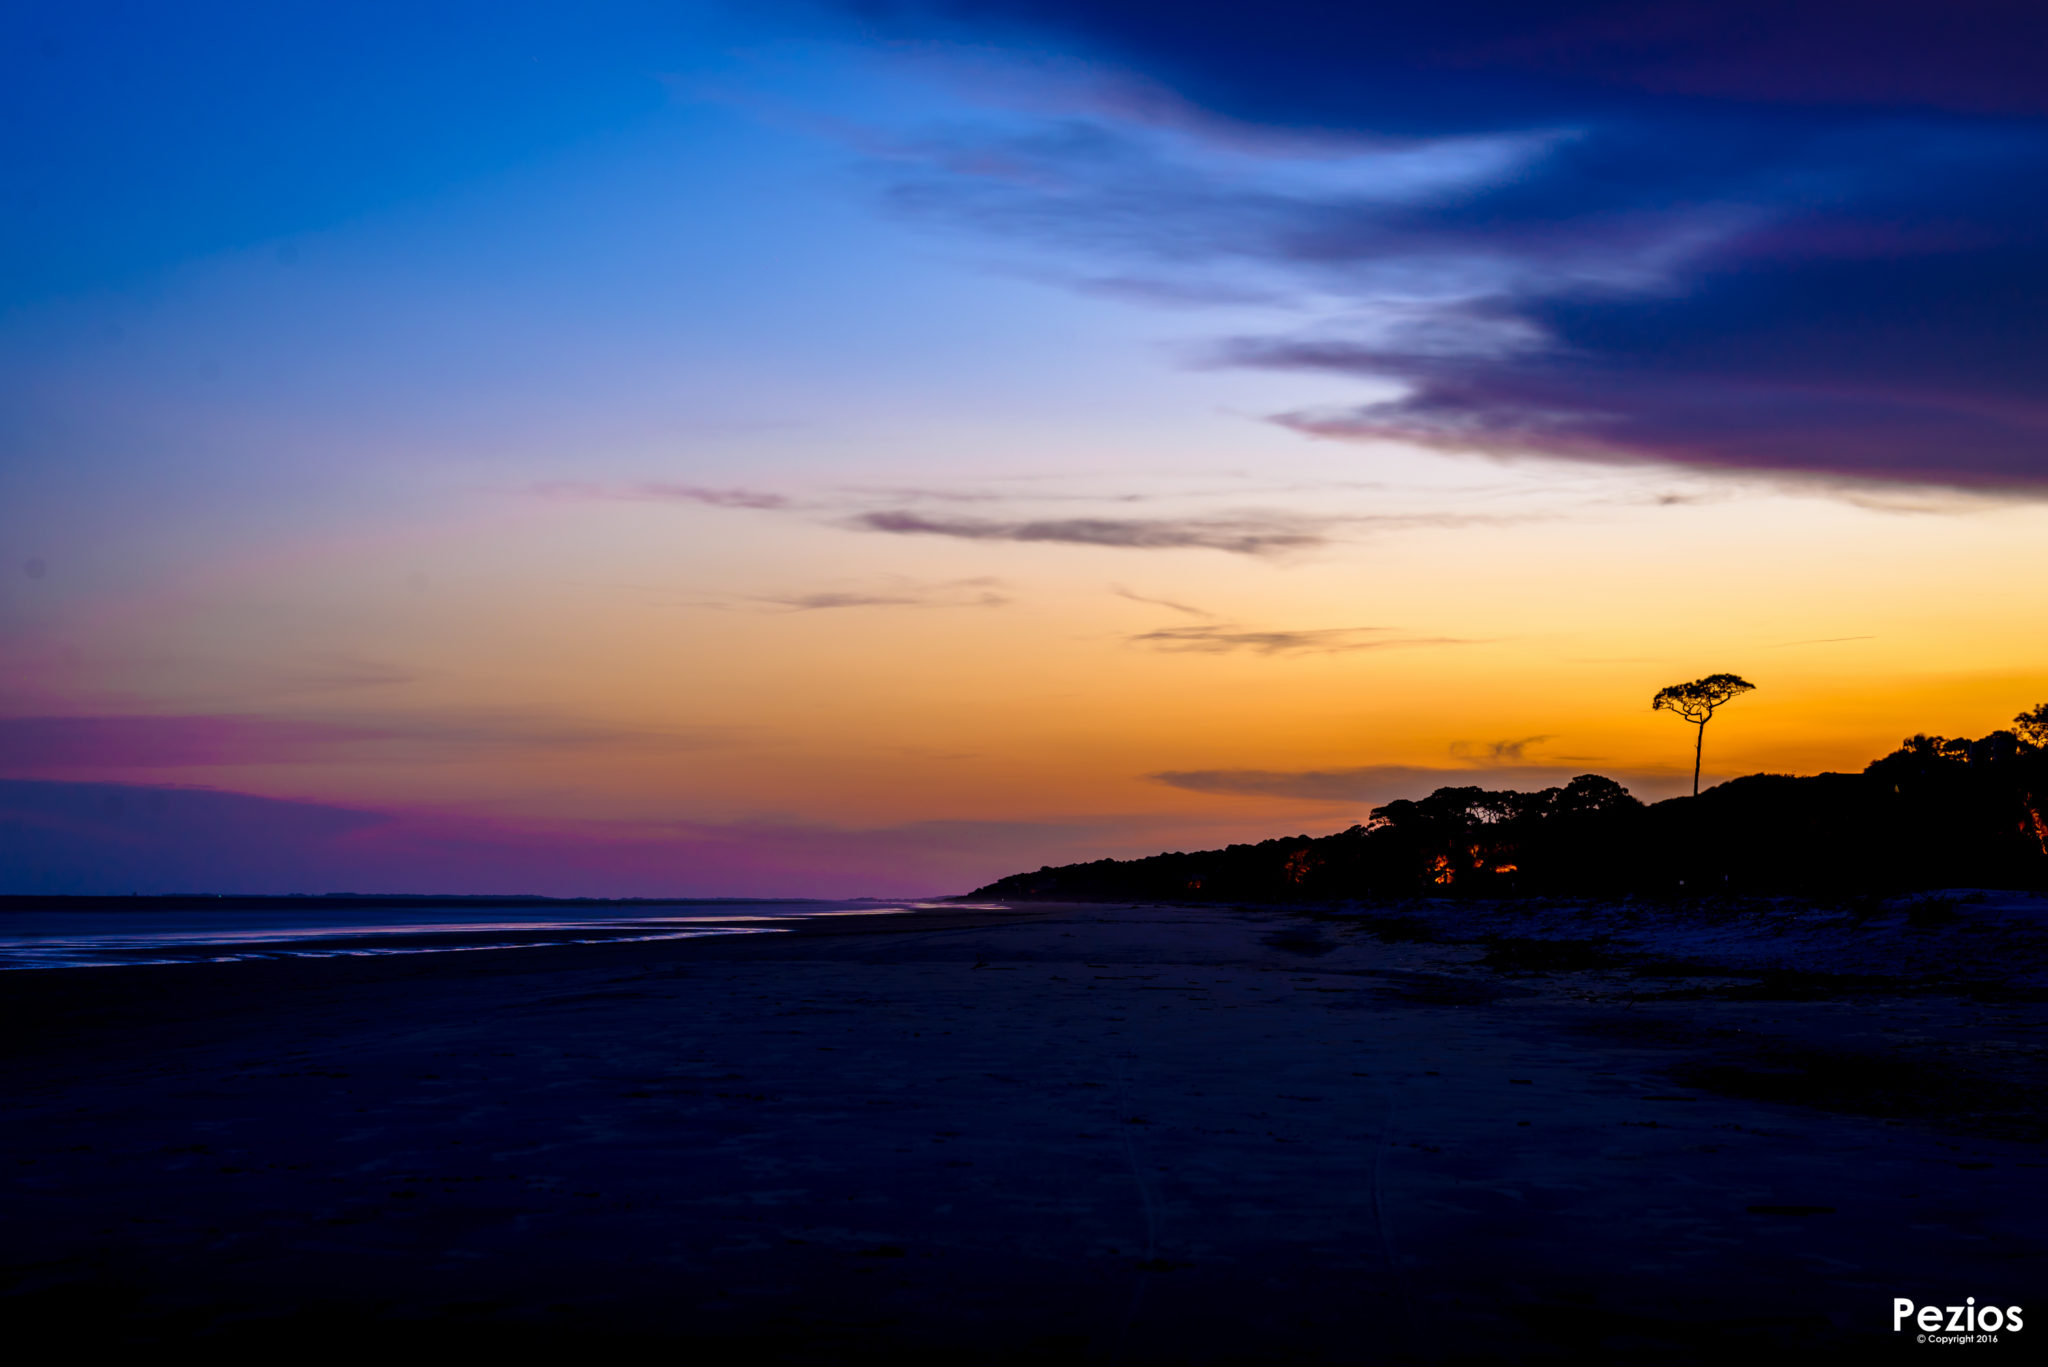 Sunrise/ Sunset - Hilton Head Island, SC